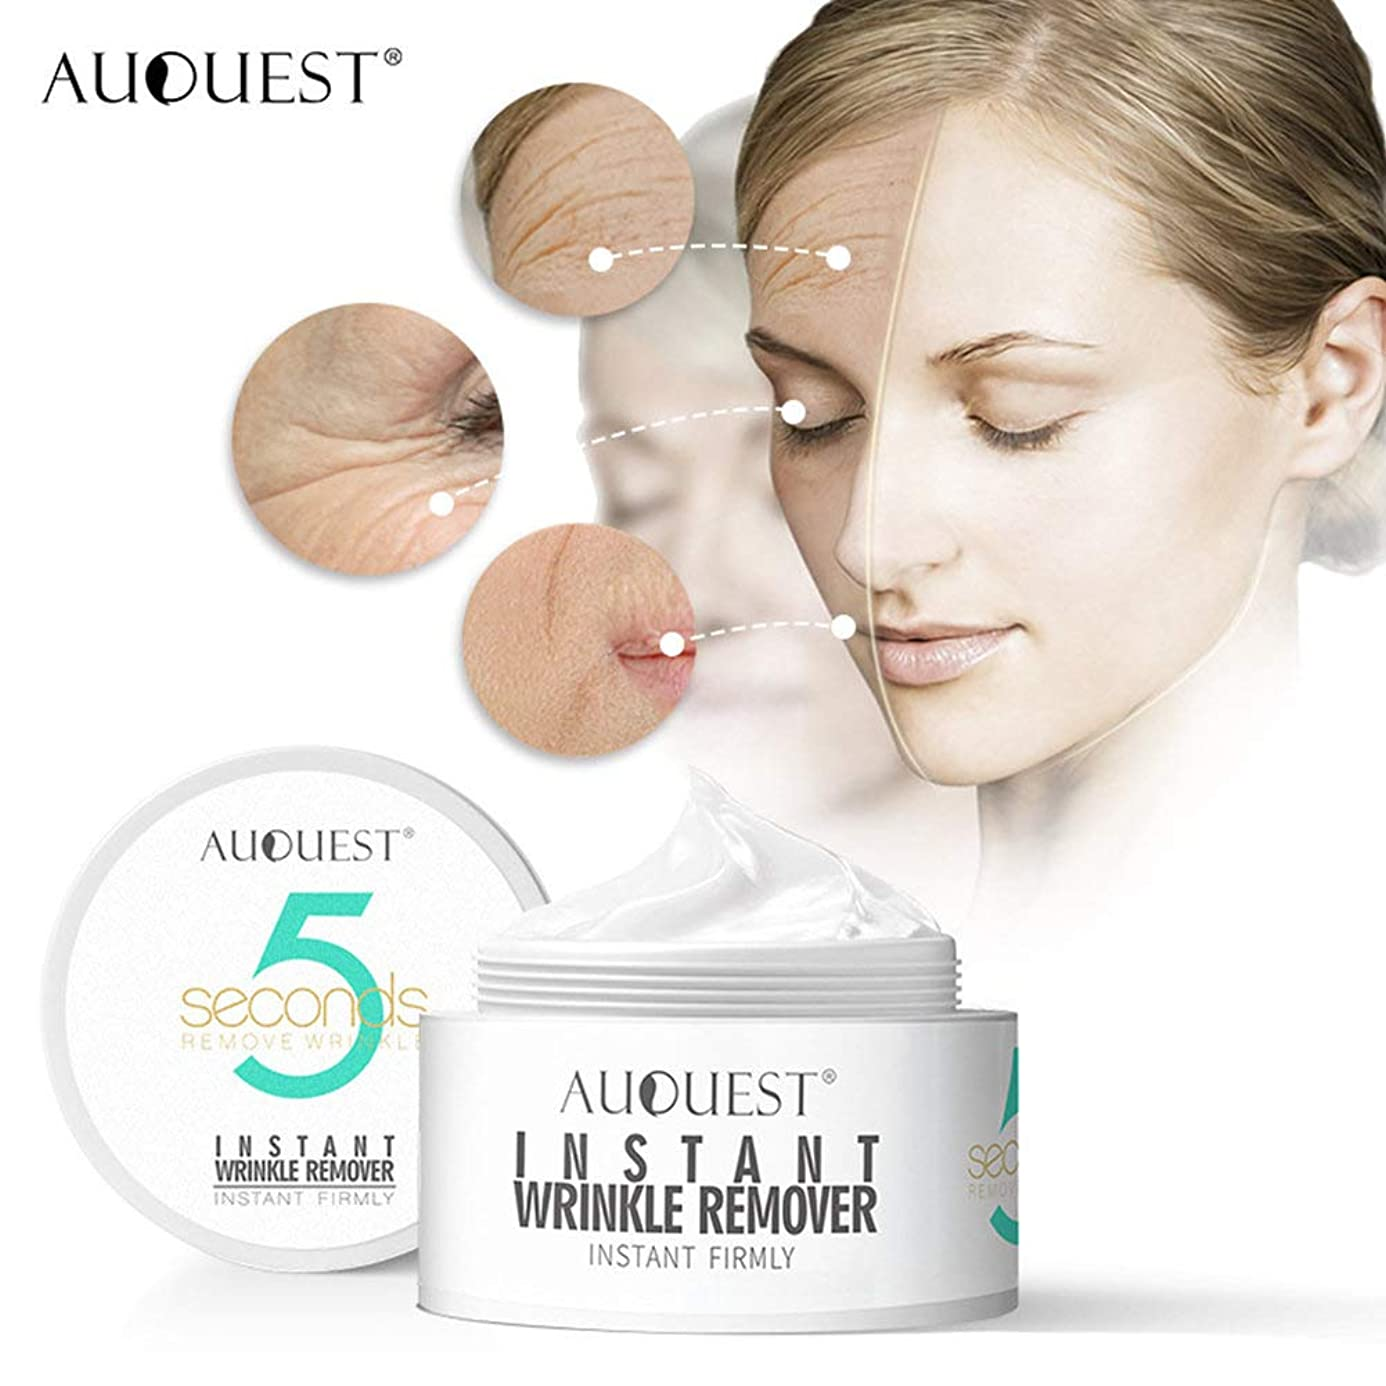 Anti Aging Eye Area Cream Face Wrinkle Remover Cream,100% Vegan Natural Firming Under Eye Cream Hydrating Moisturizer,for Bags Under Eyes,Dark Circles and Puffiness krv3242310